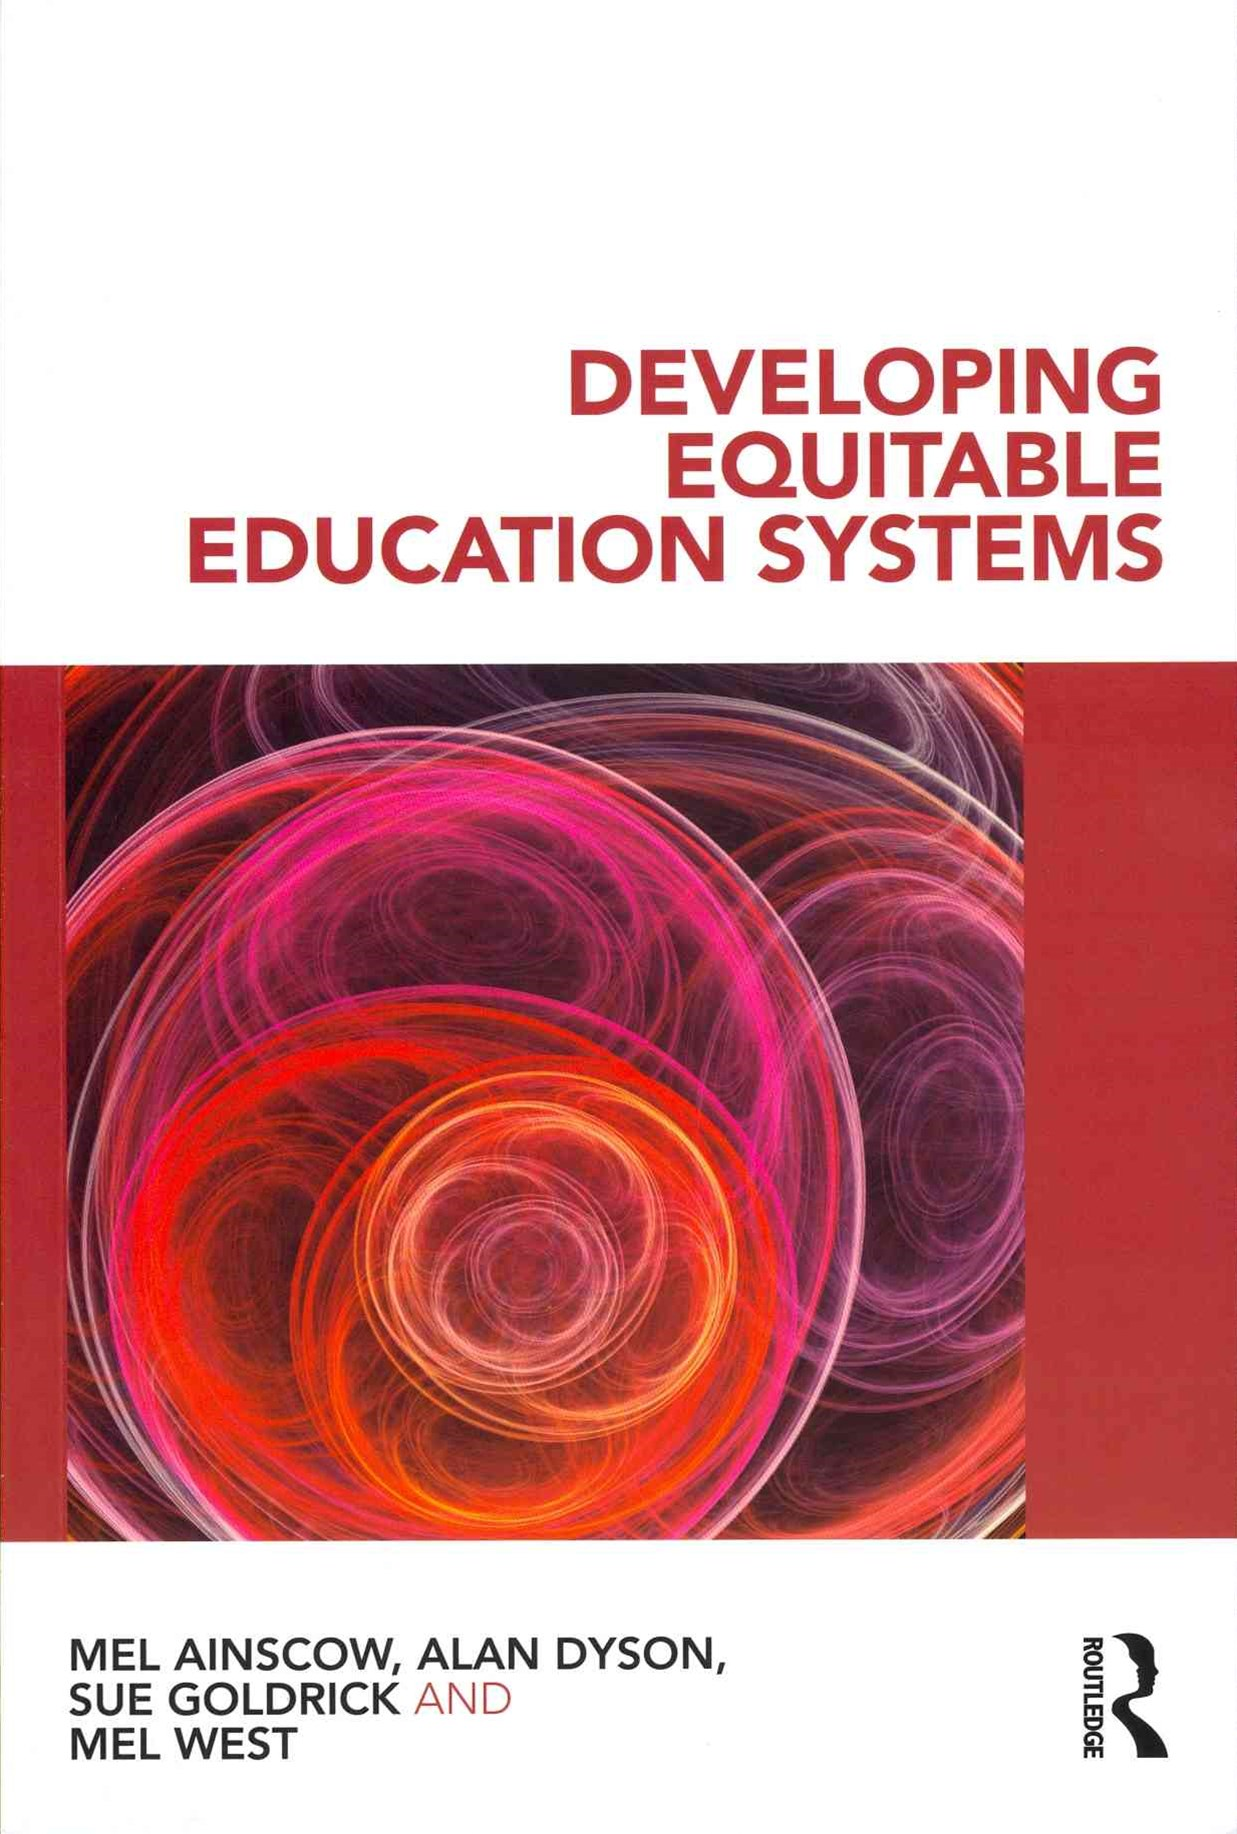 Developing Equitable Education Systems